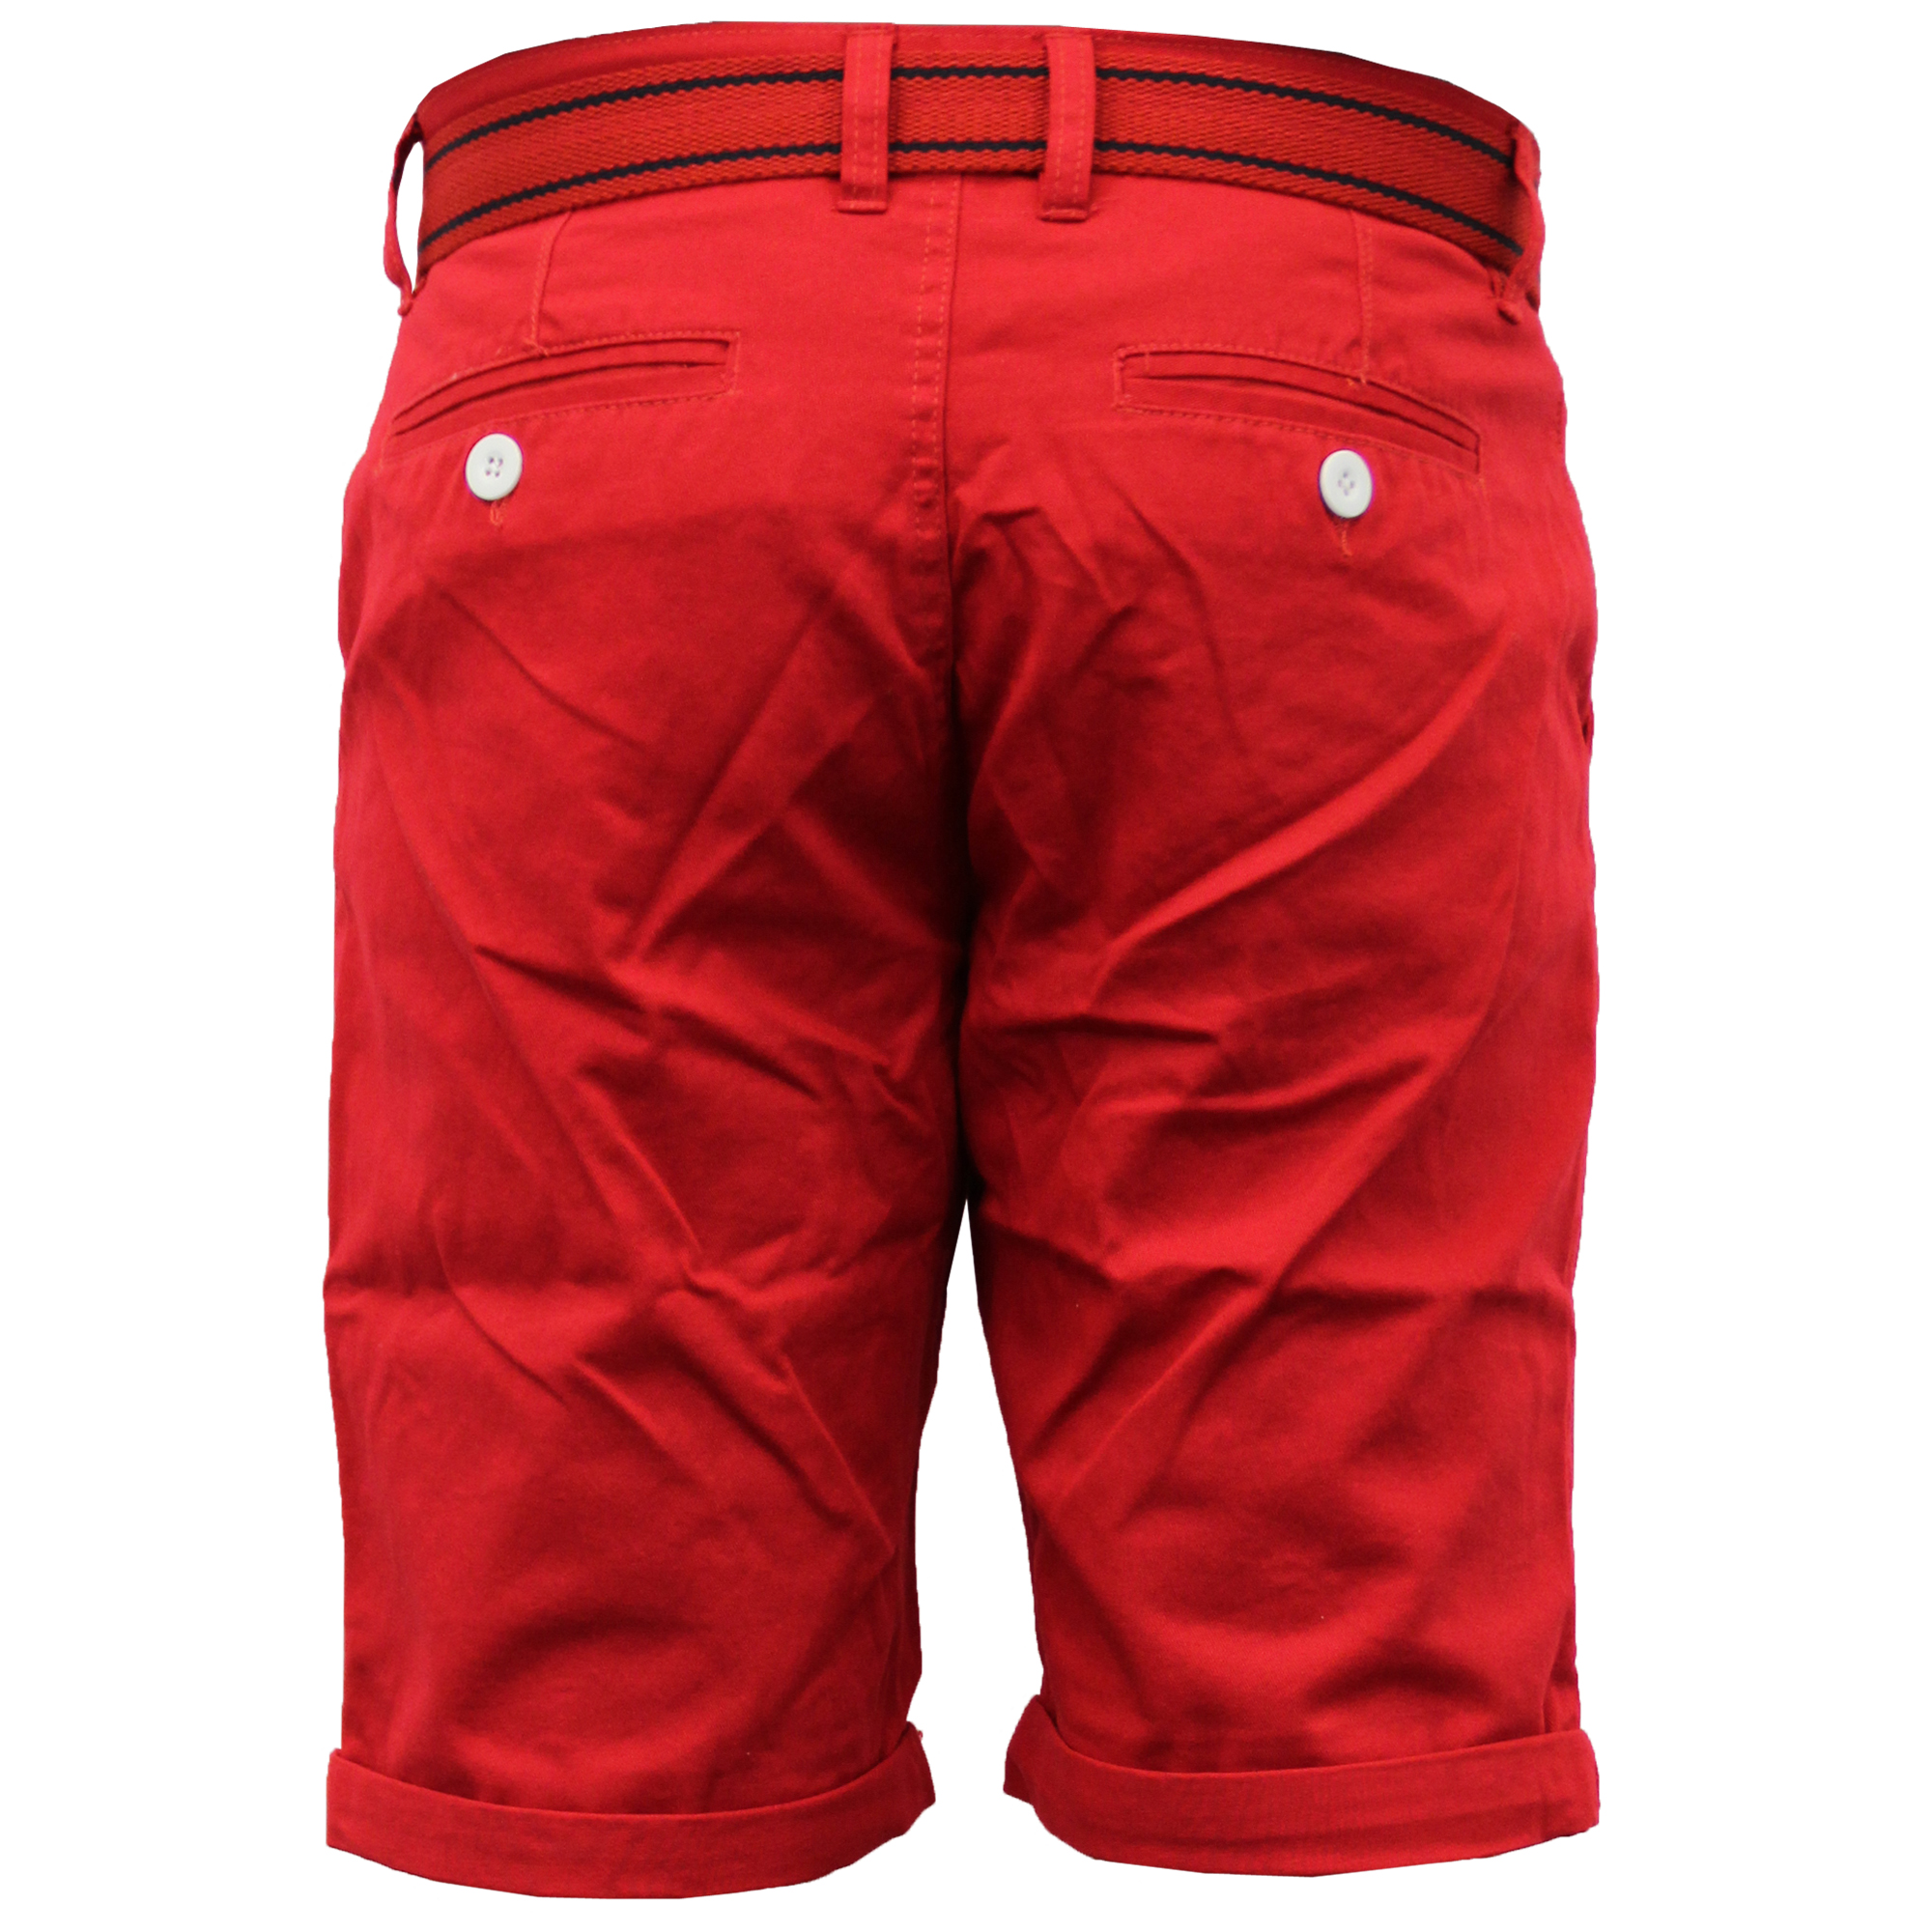 Mens-Chino-Shorts-Threadbare-Cotton-Oxford-Belted-Loyalty-amp-Faith-Seven-Series thumbnail 41